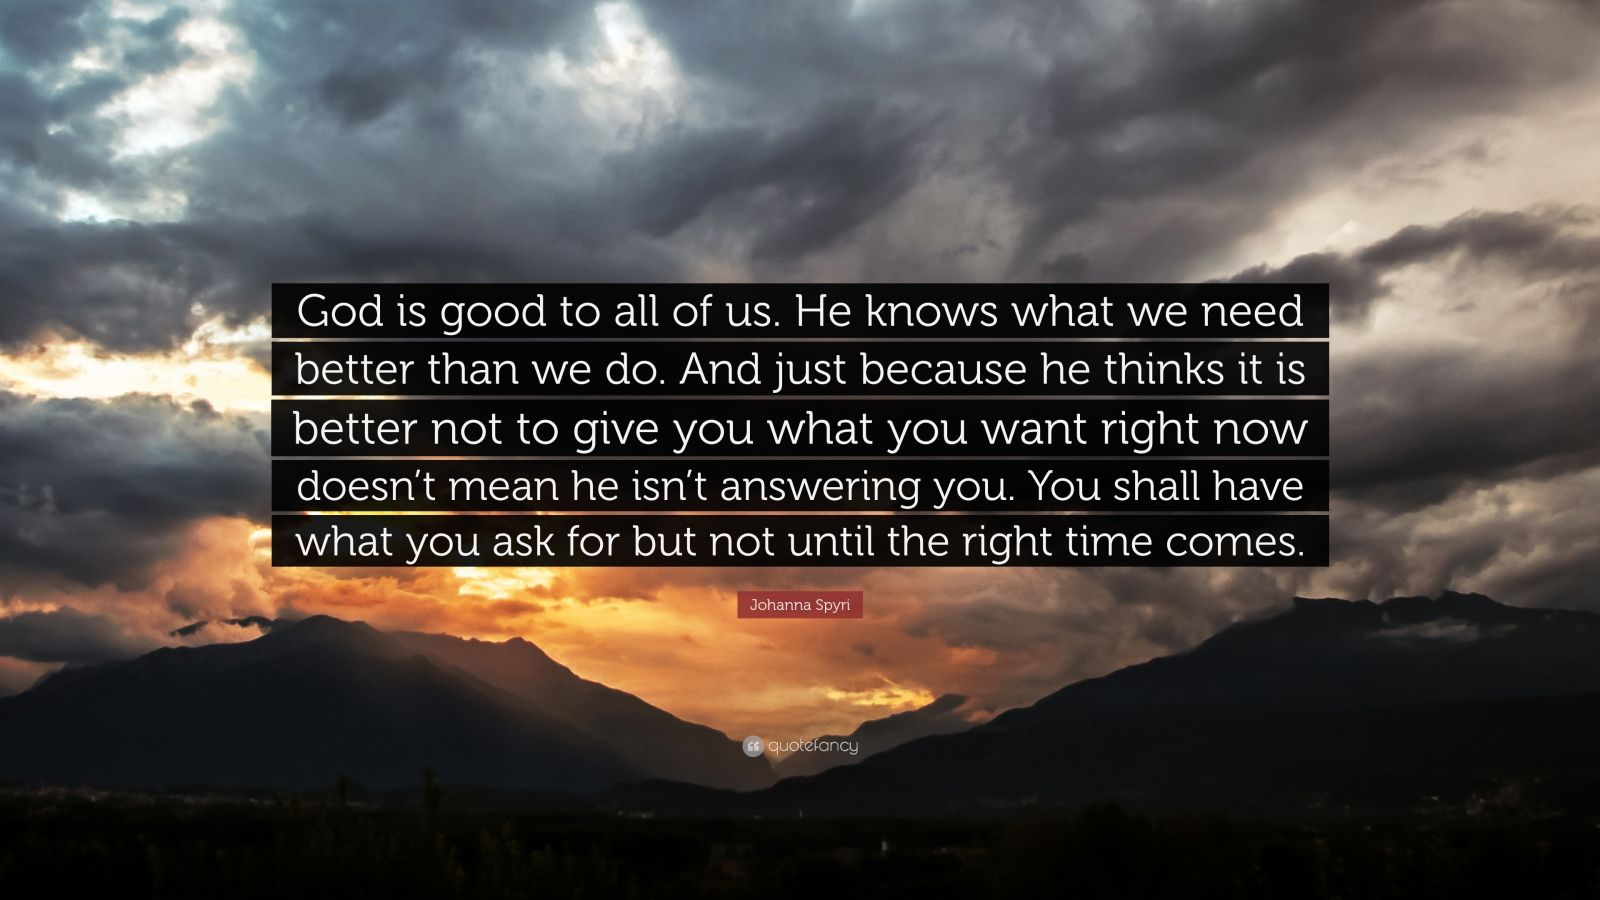 "Johanna Spyri Quote: ""God is good to all of us. He knows what we need better than we do. And just because he thinks it is better not to give you what you want right now doesn't mean he isn't answering you. You shall have what you ask for but not until the right time comes."""